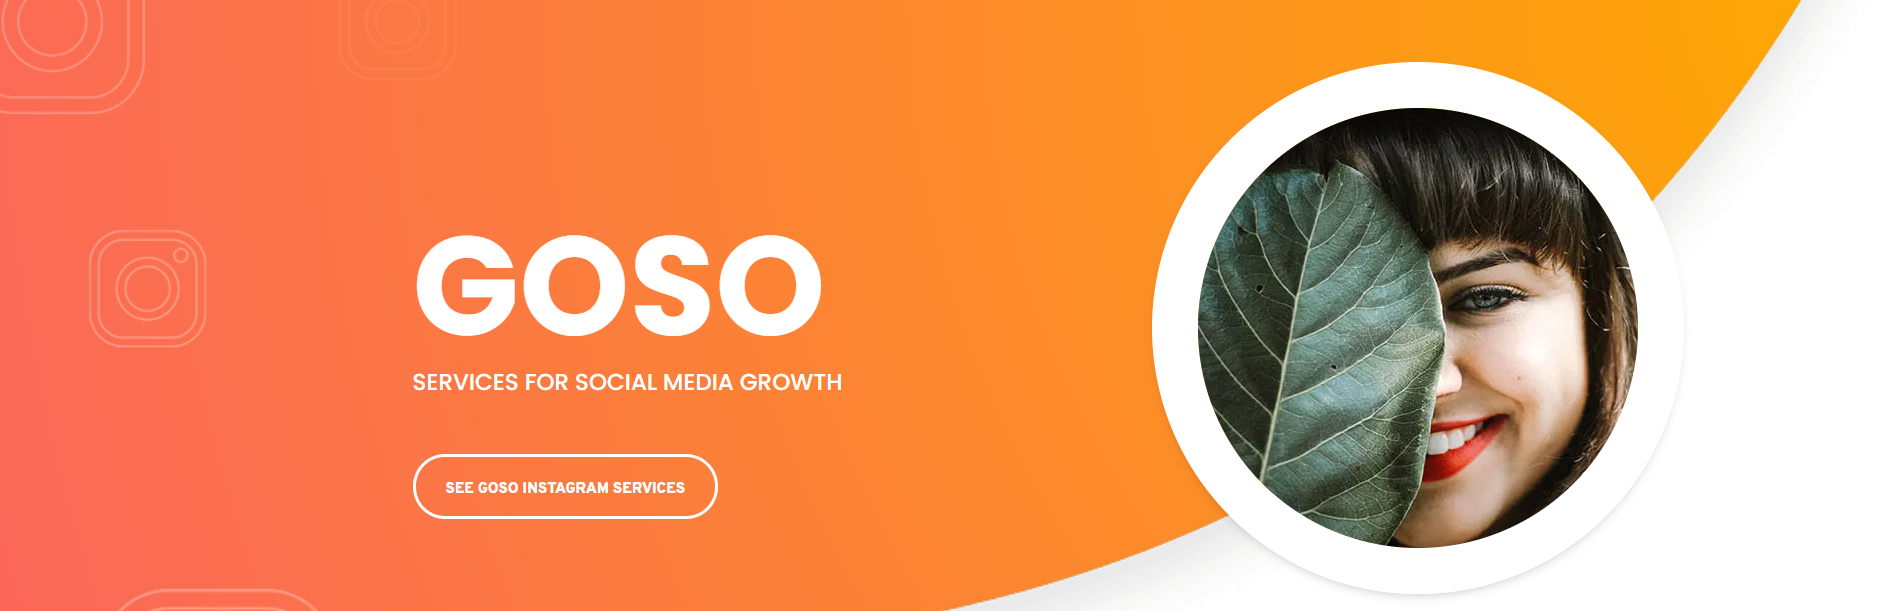 GOSO Adds HyperGrowth To Their Instagram Account Management Services